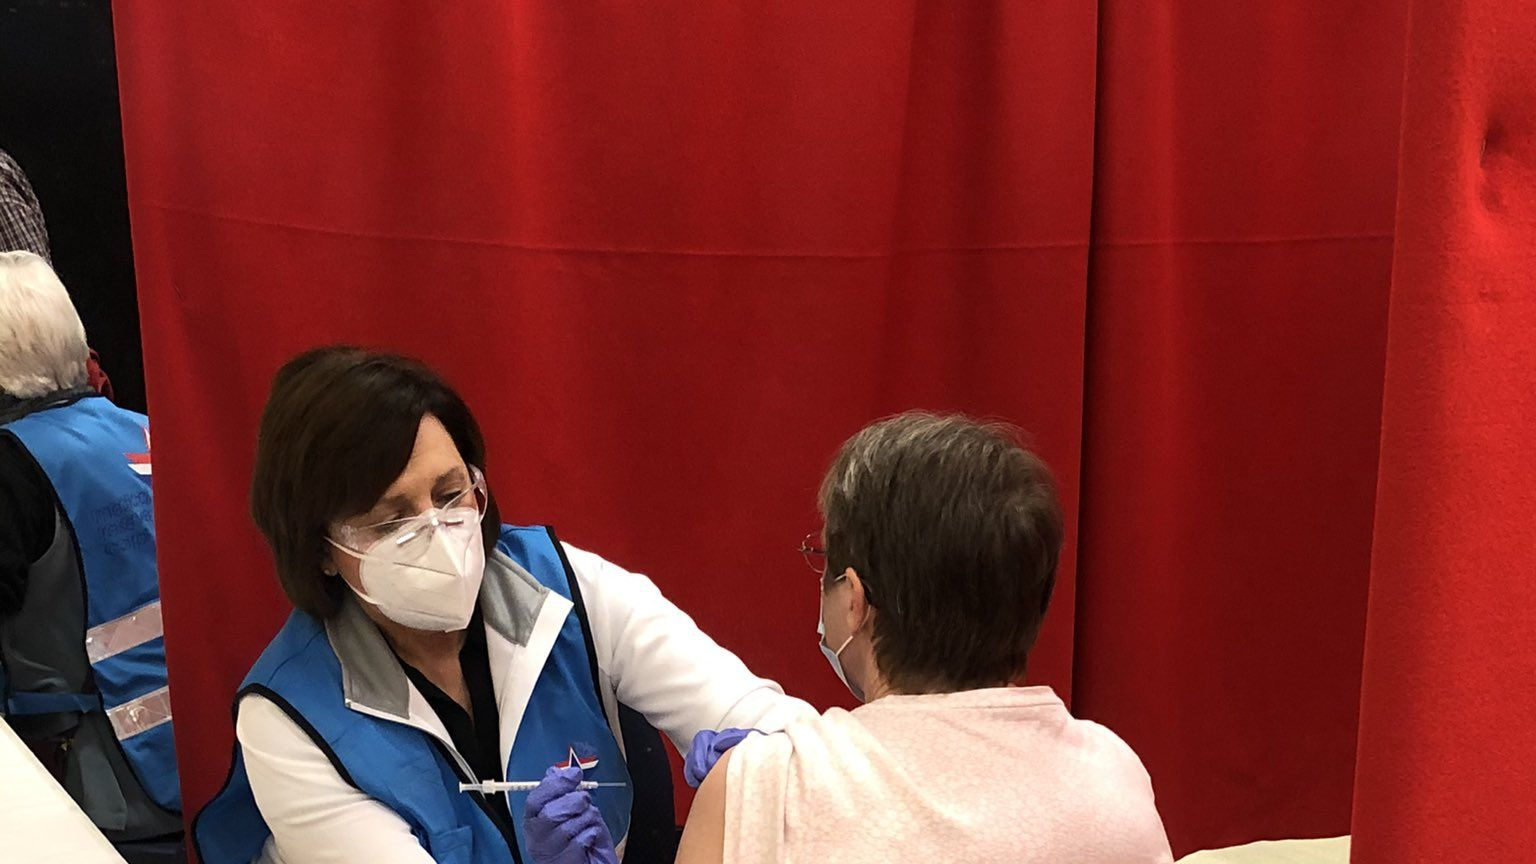 600 vaccinated at clinic inside Independence Center